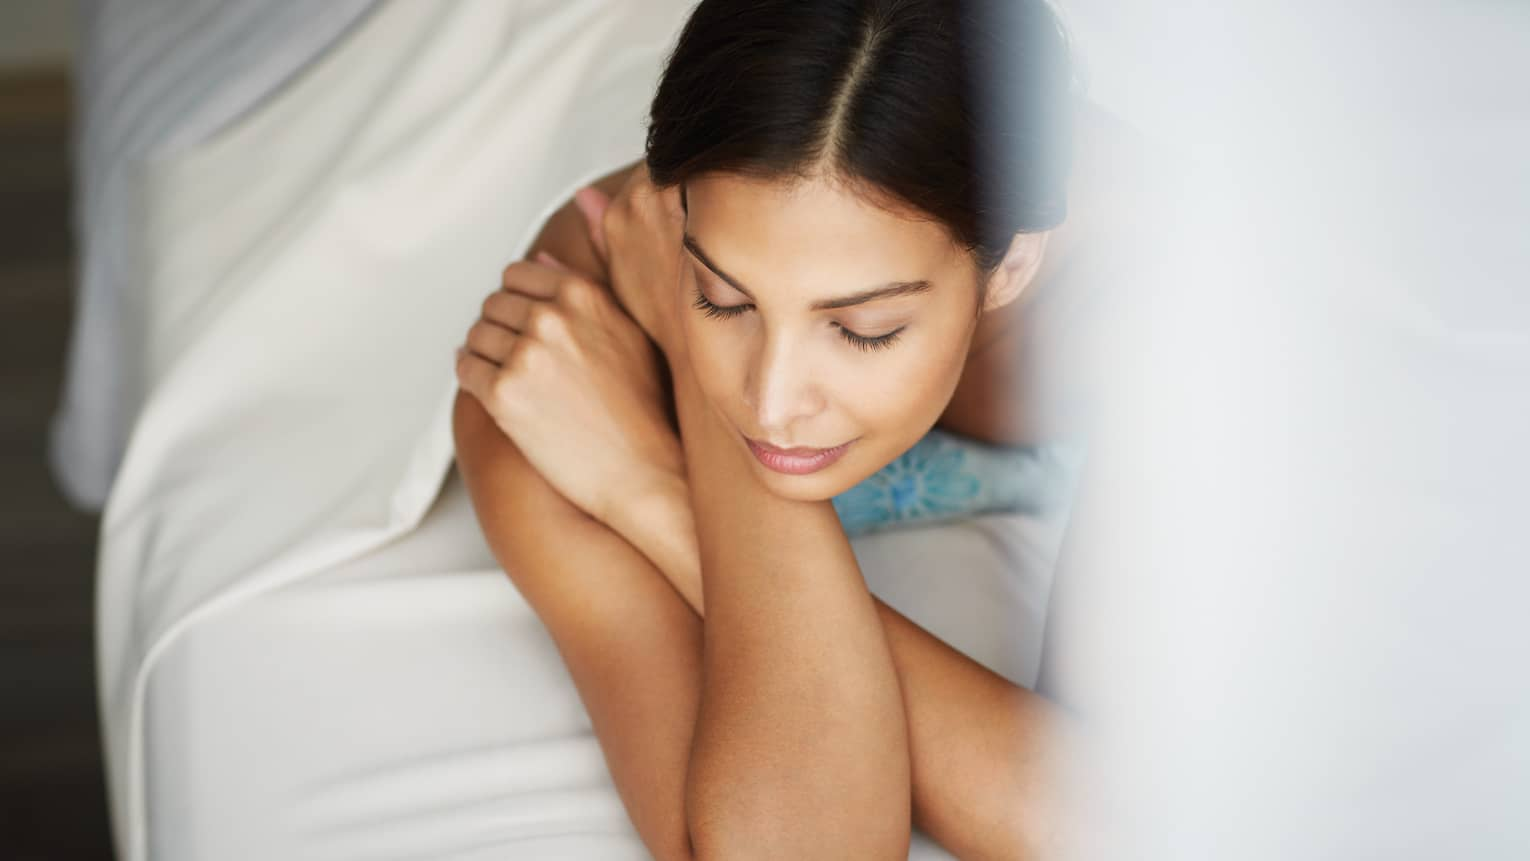 Woman with dark hair lays on her stomach under white sheet, propped up on arms, eyes closed